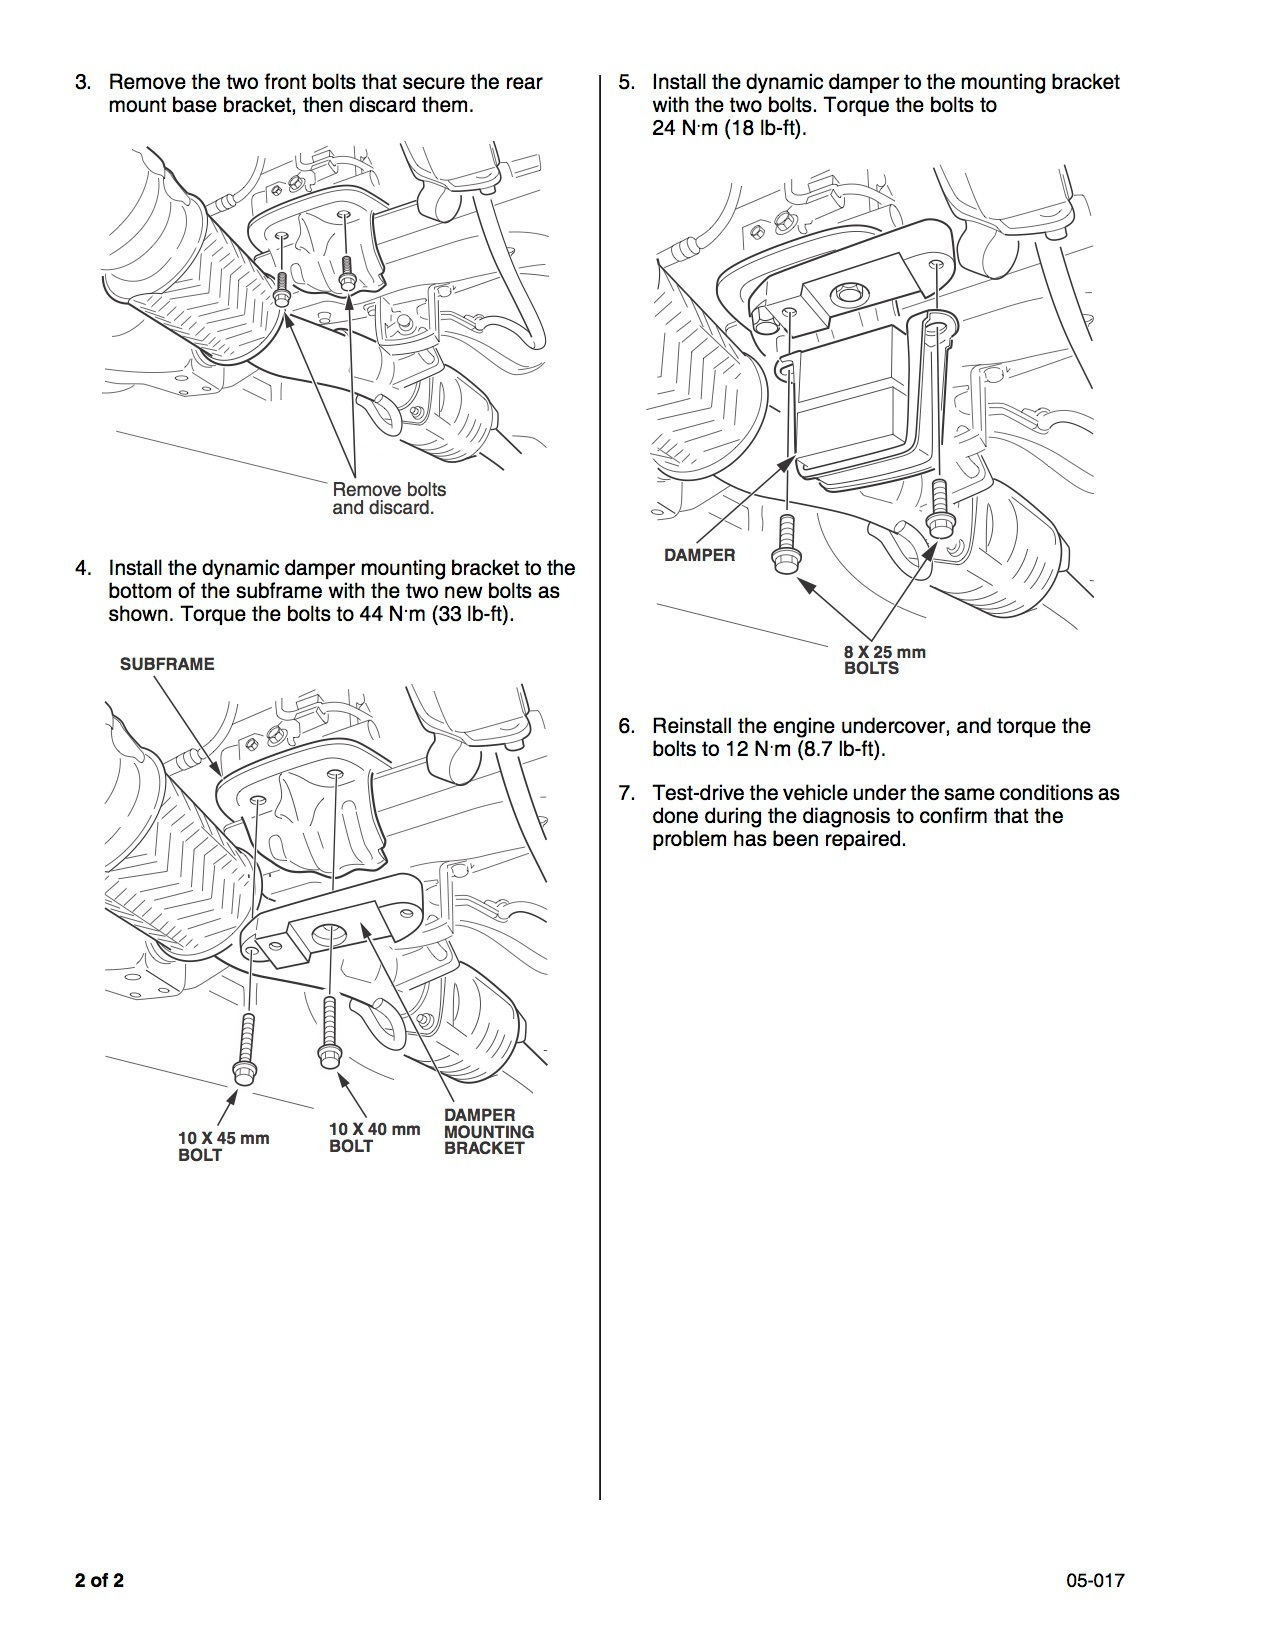 car shaking under specific conditions - page 2